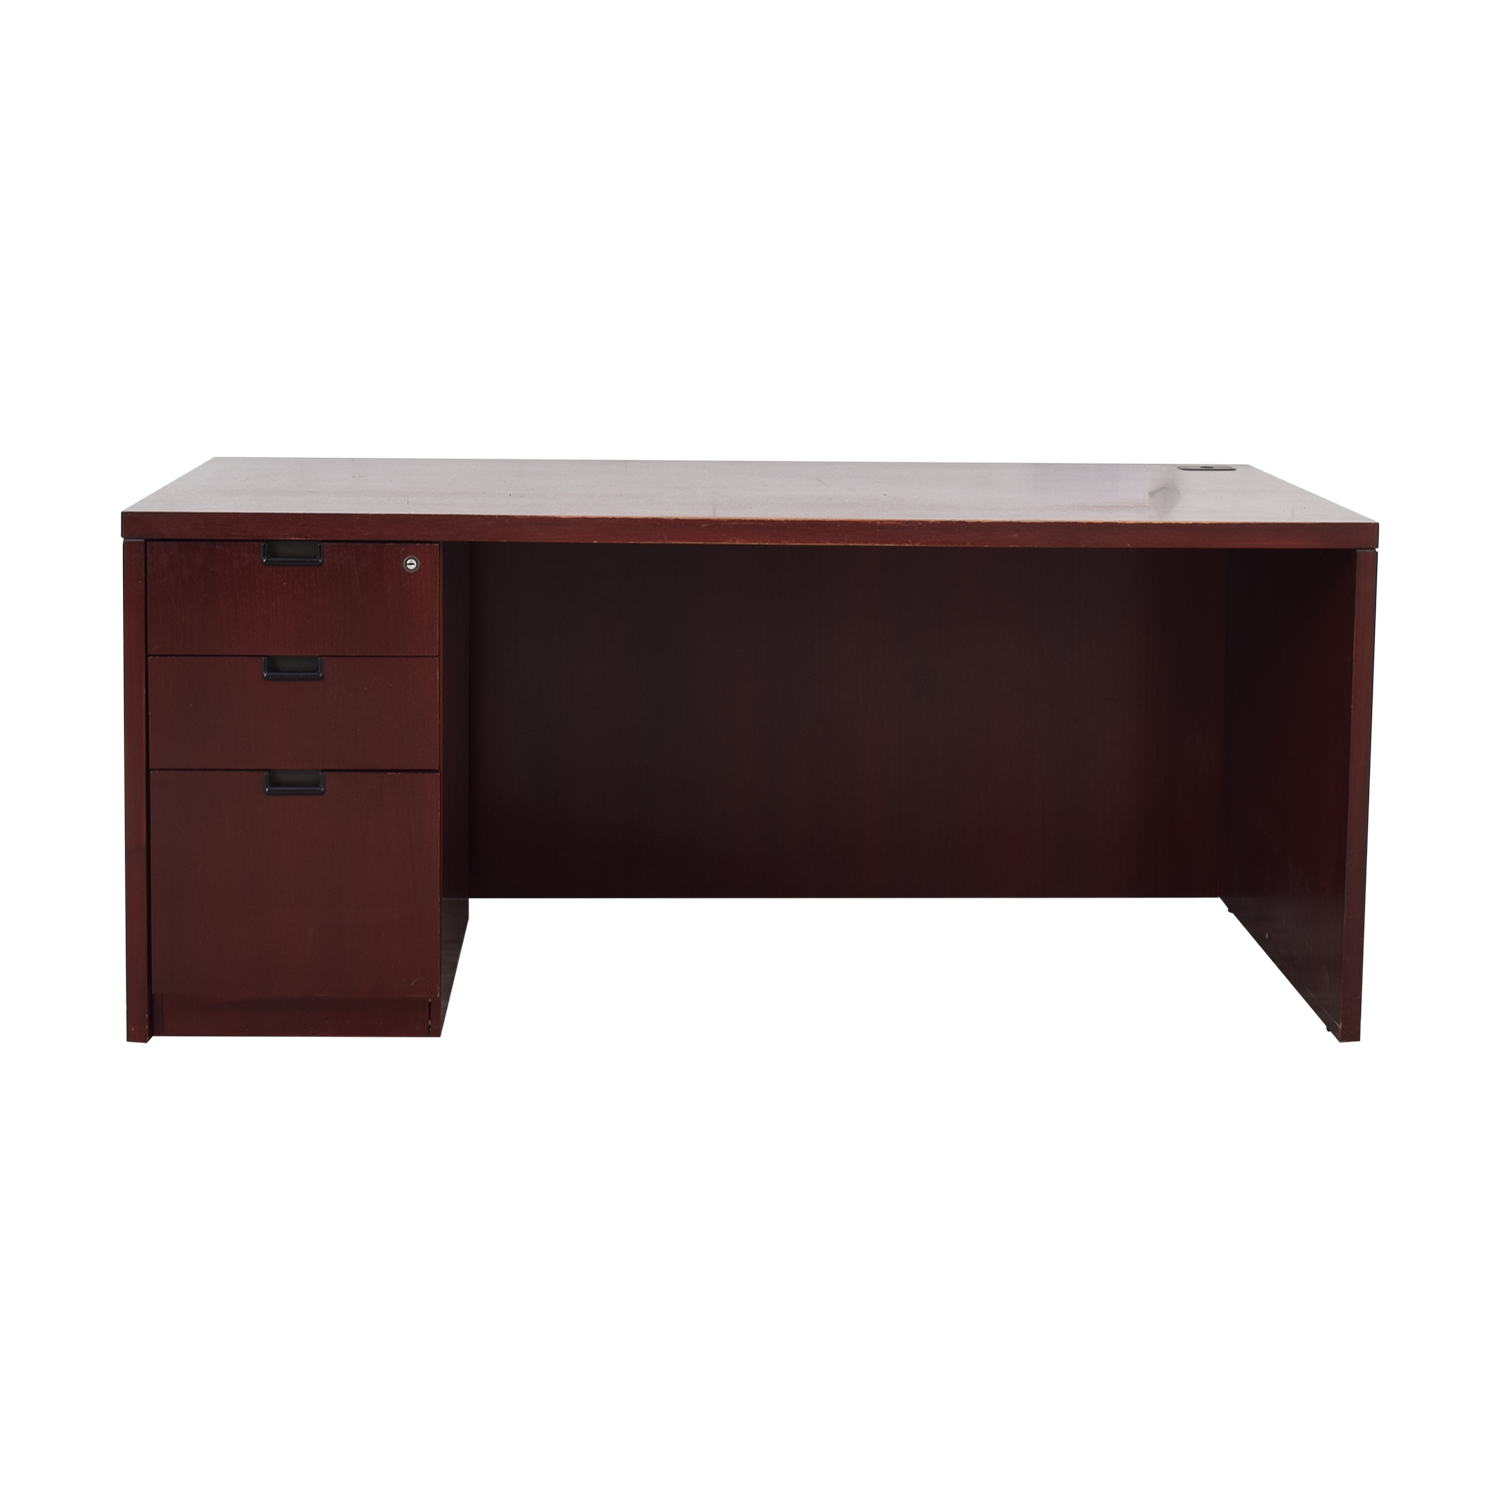 Three-Drawer Wood Desk nj